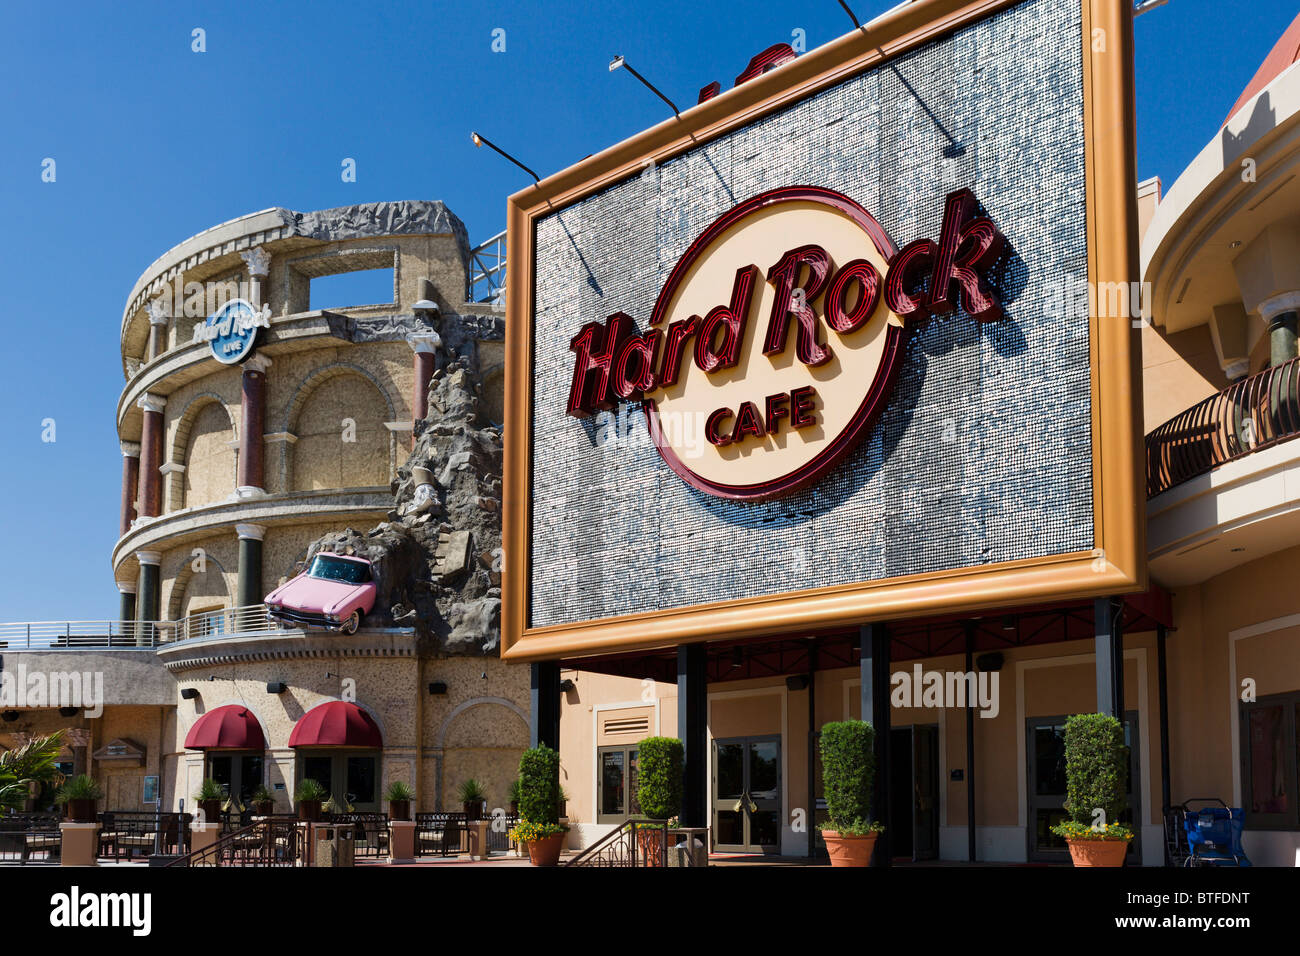 hard rock cafe at universal city walk universal studios orlando stock photo royalty free. Black Bedroom Furniture Sets. Home Design Ideas